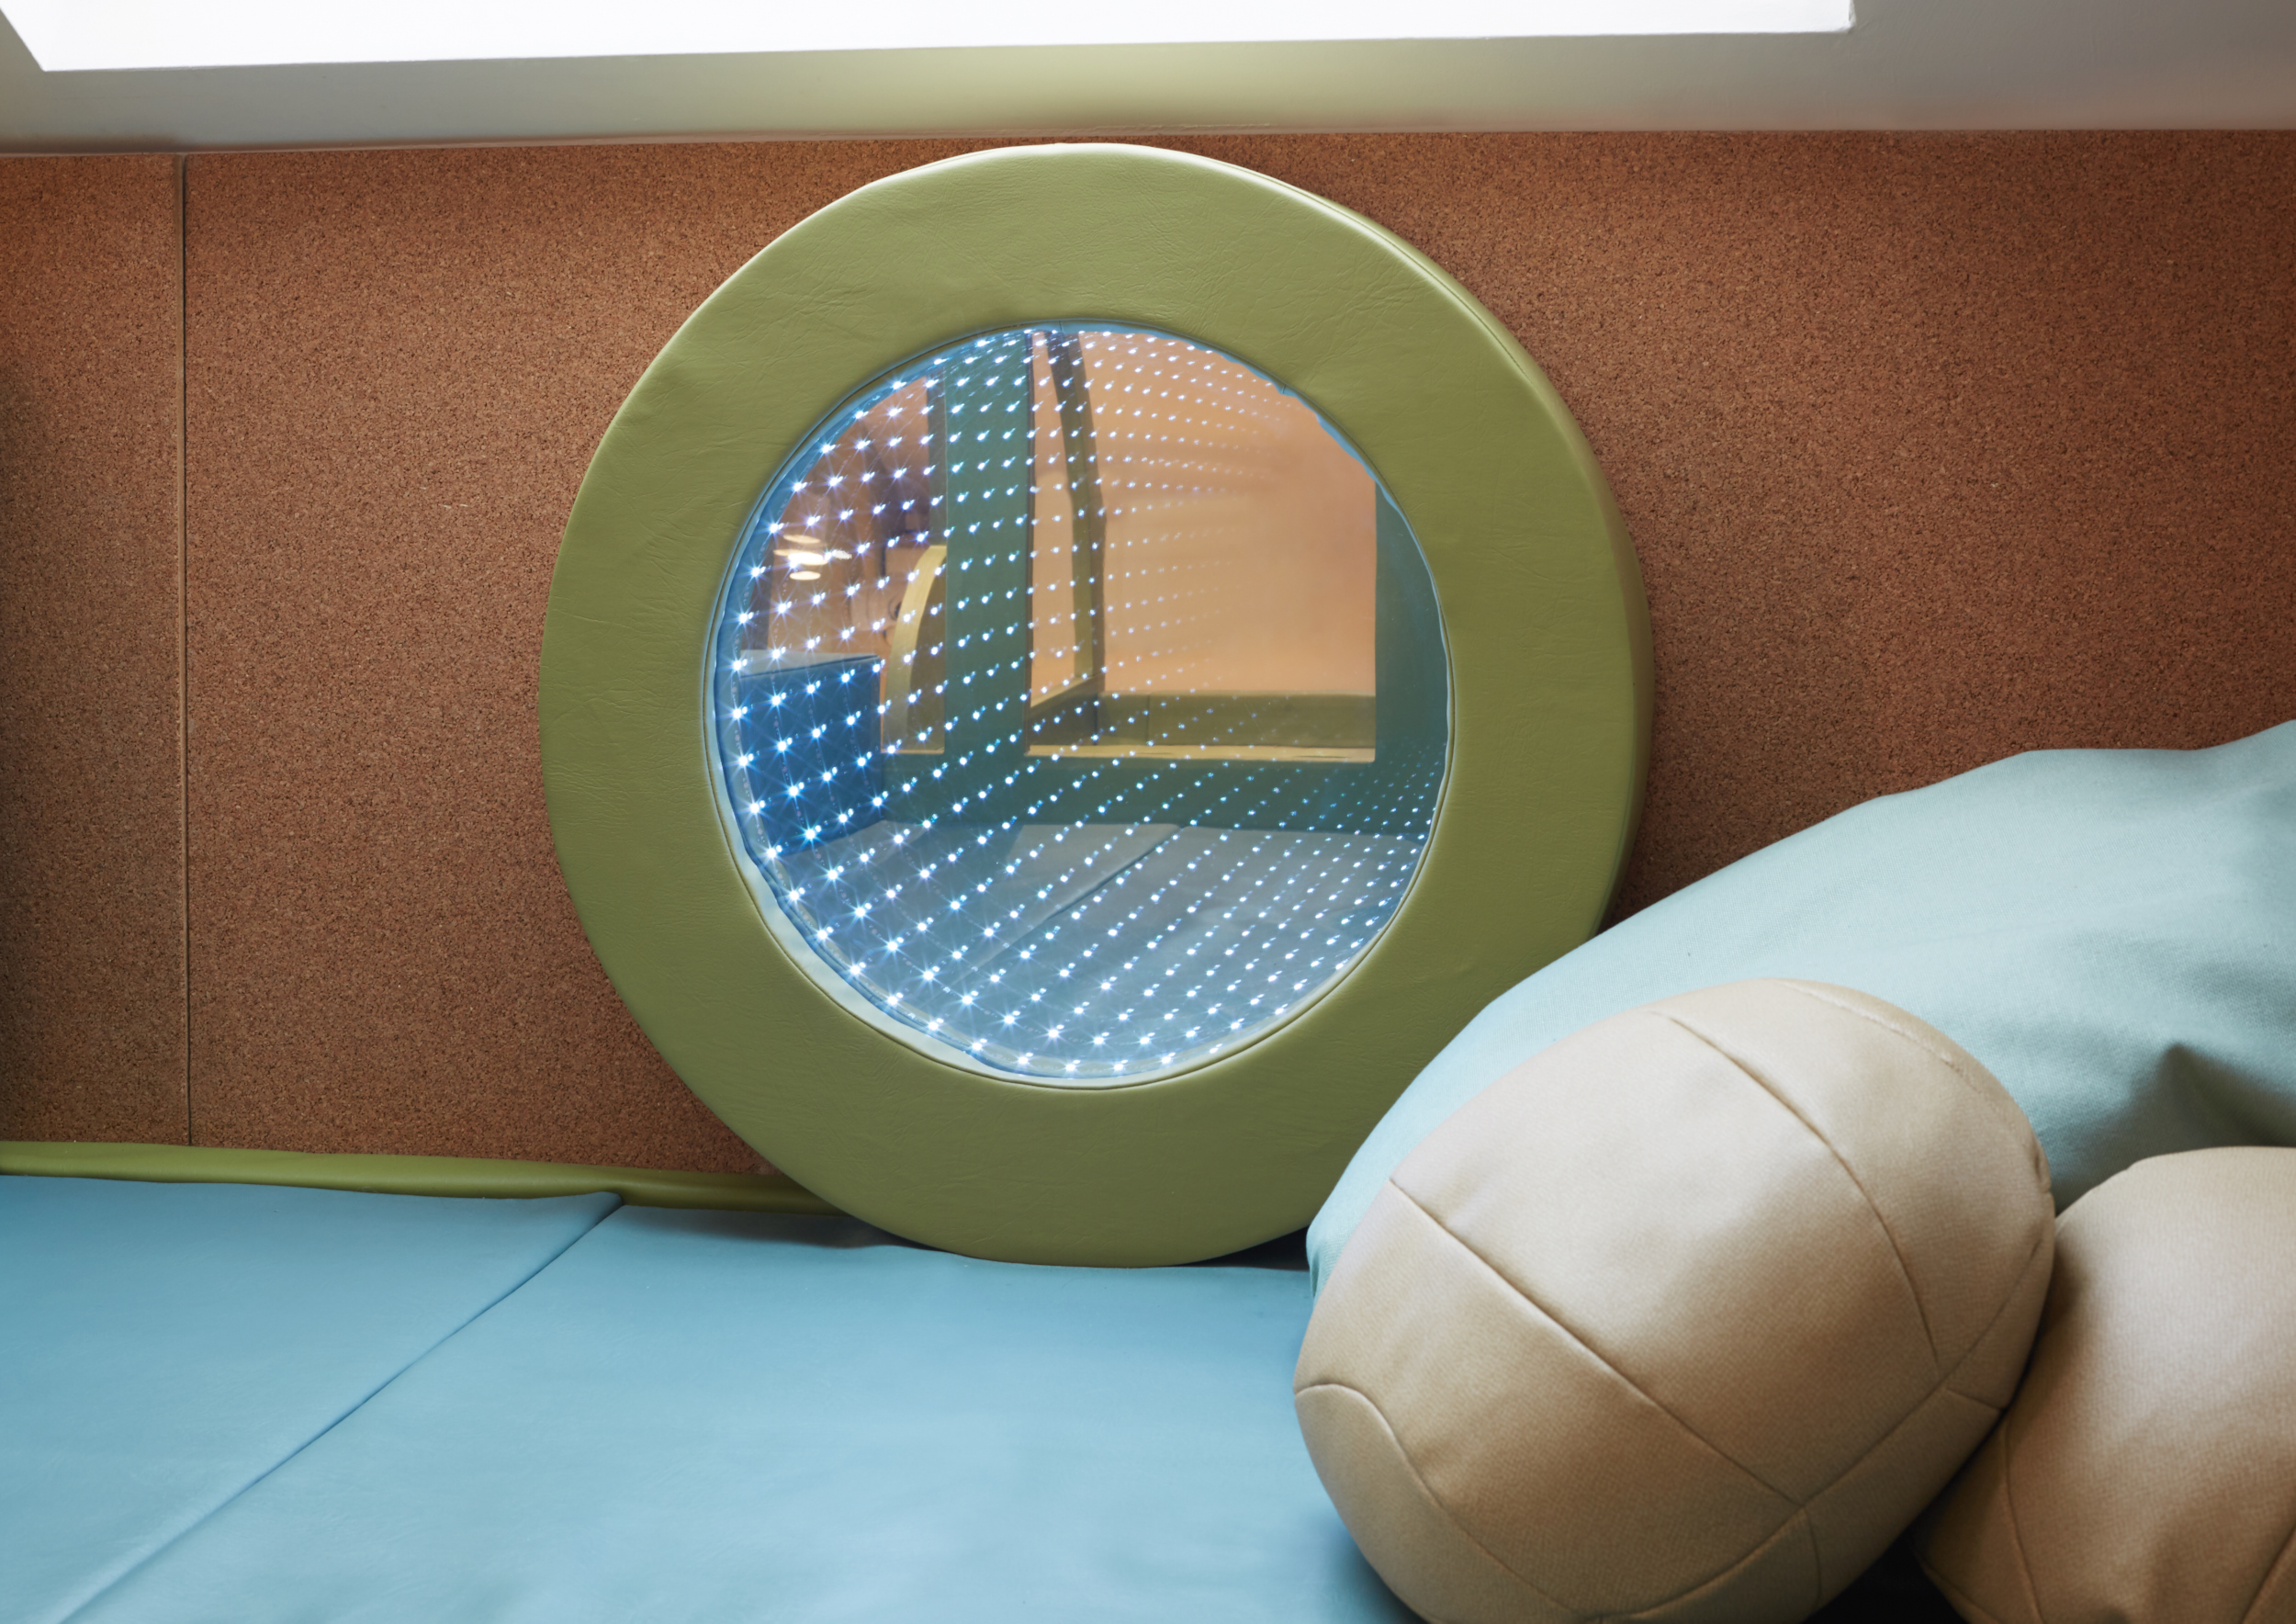 Children can now crawl across to different parts of the nursery